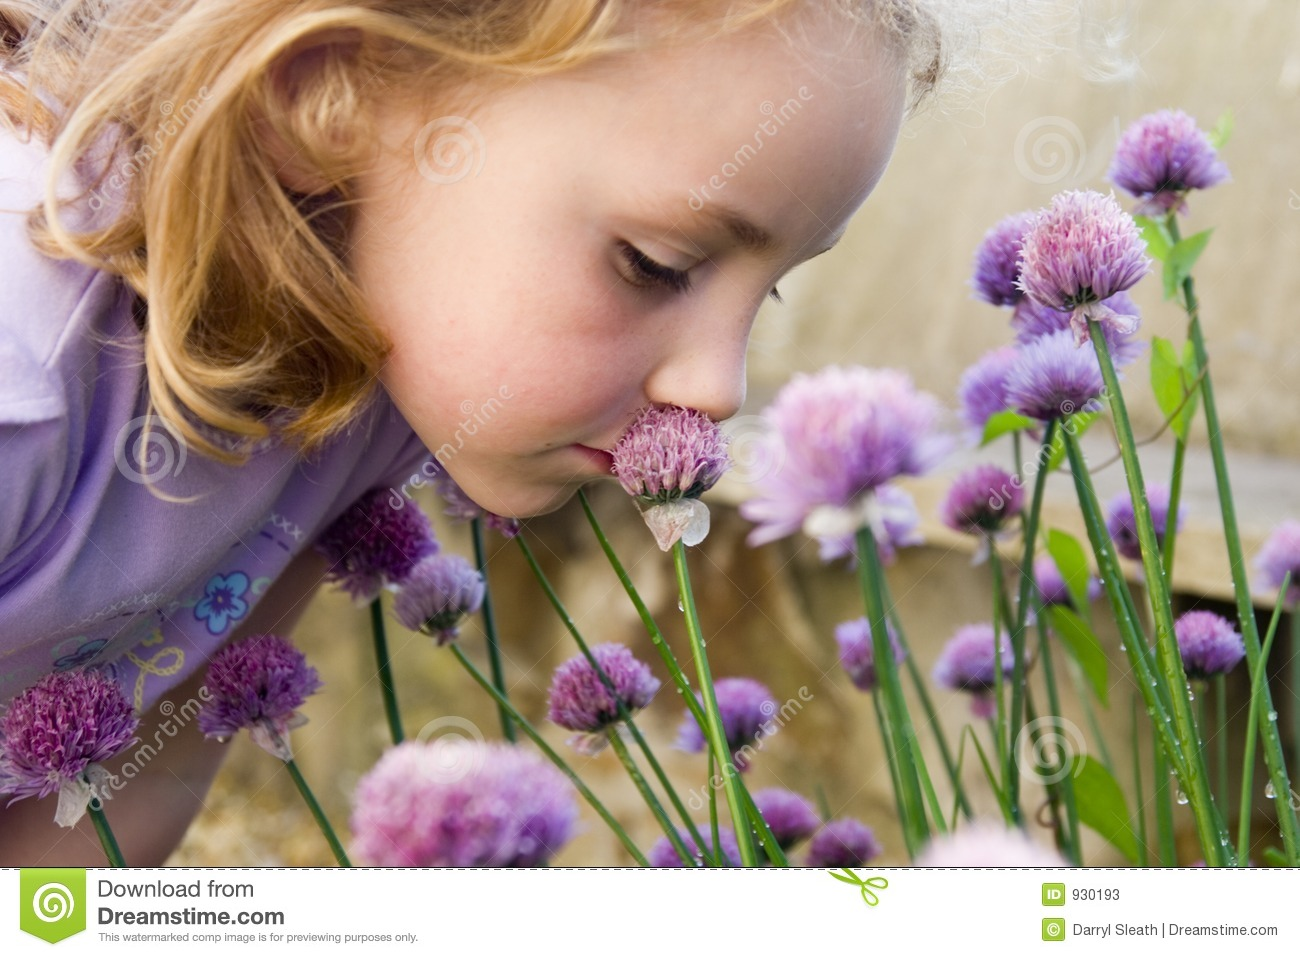 Young girl smelling flowers